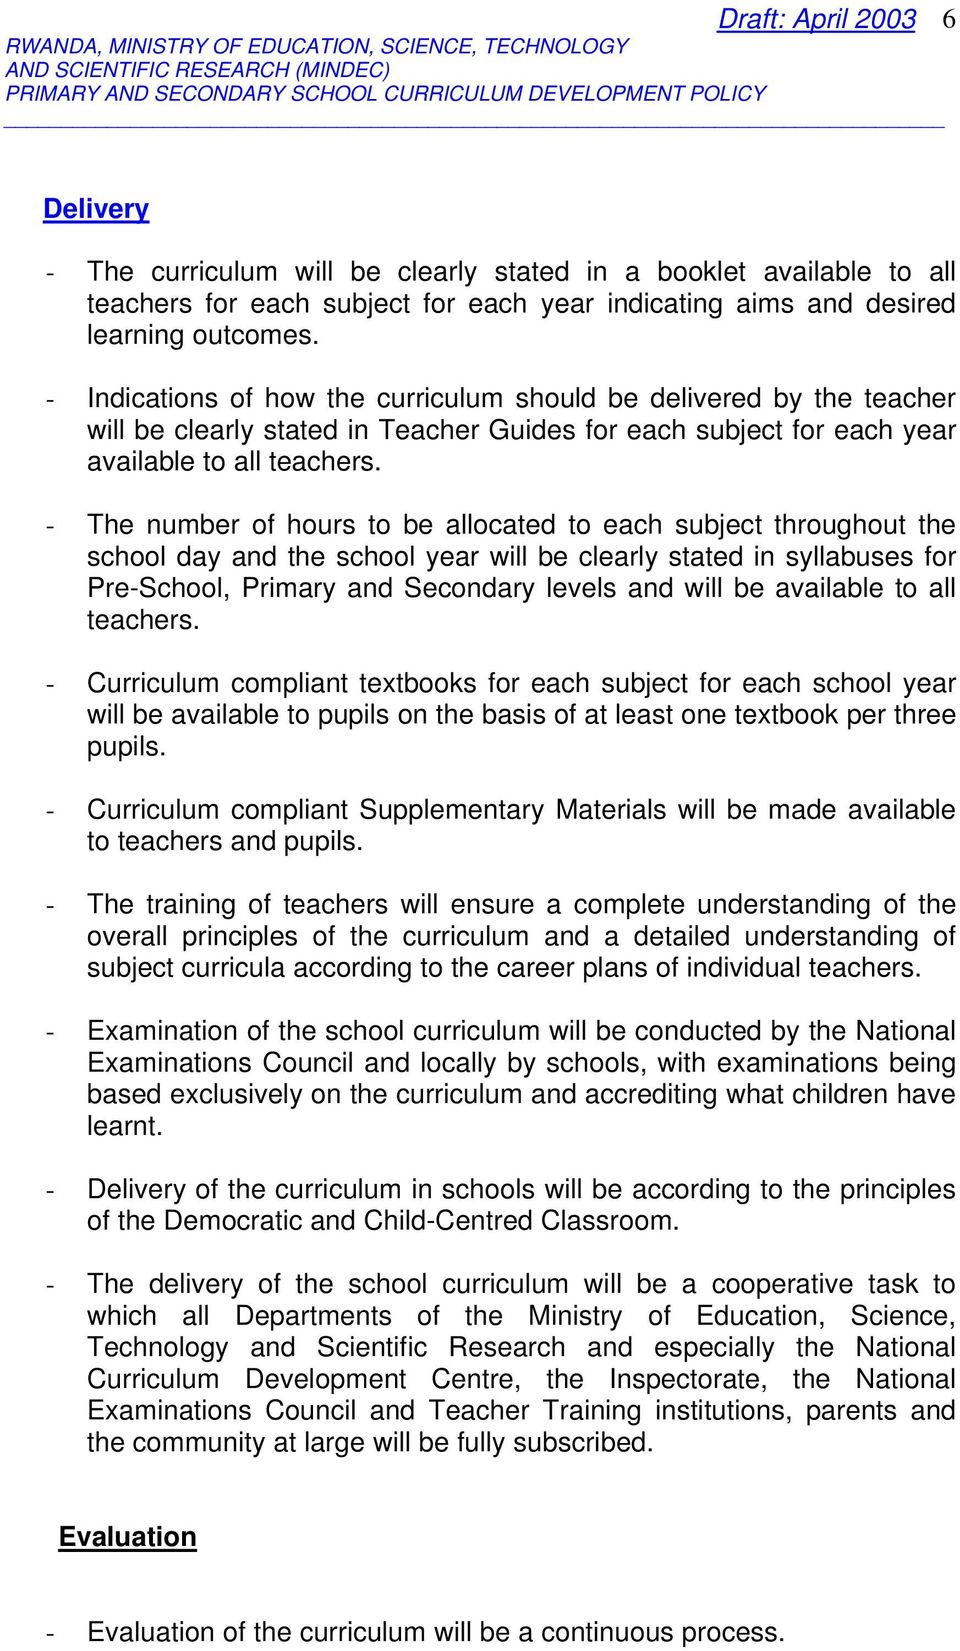 - The number of hours to be allocated to each subject throughout the school day and the school year will be clearly stated in syllabuses for Pre-School, Primary and Secondary levels and will be